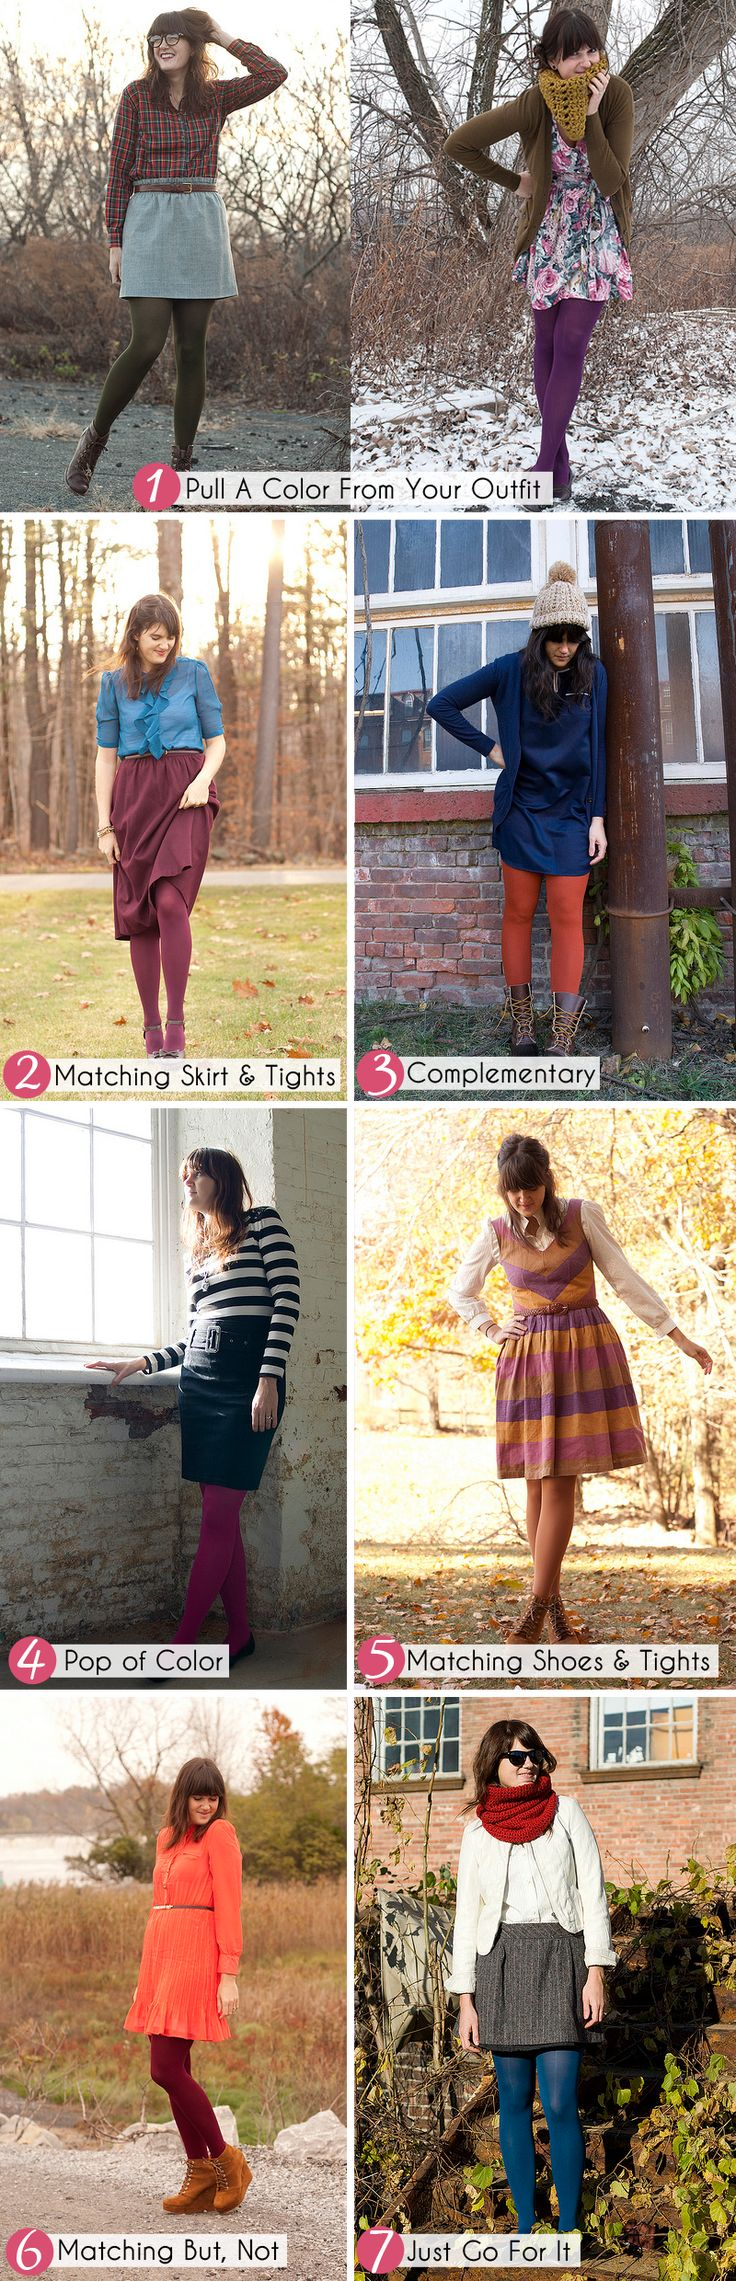 how to wear colored tights. Hmmm I like. But I like dresses and I don't... The struggles!